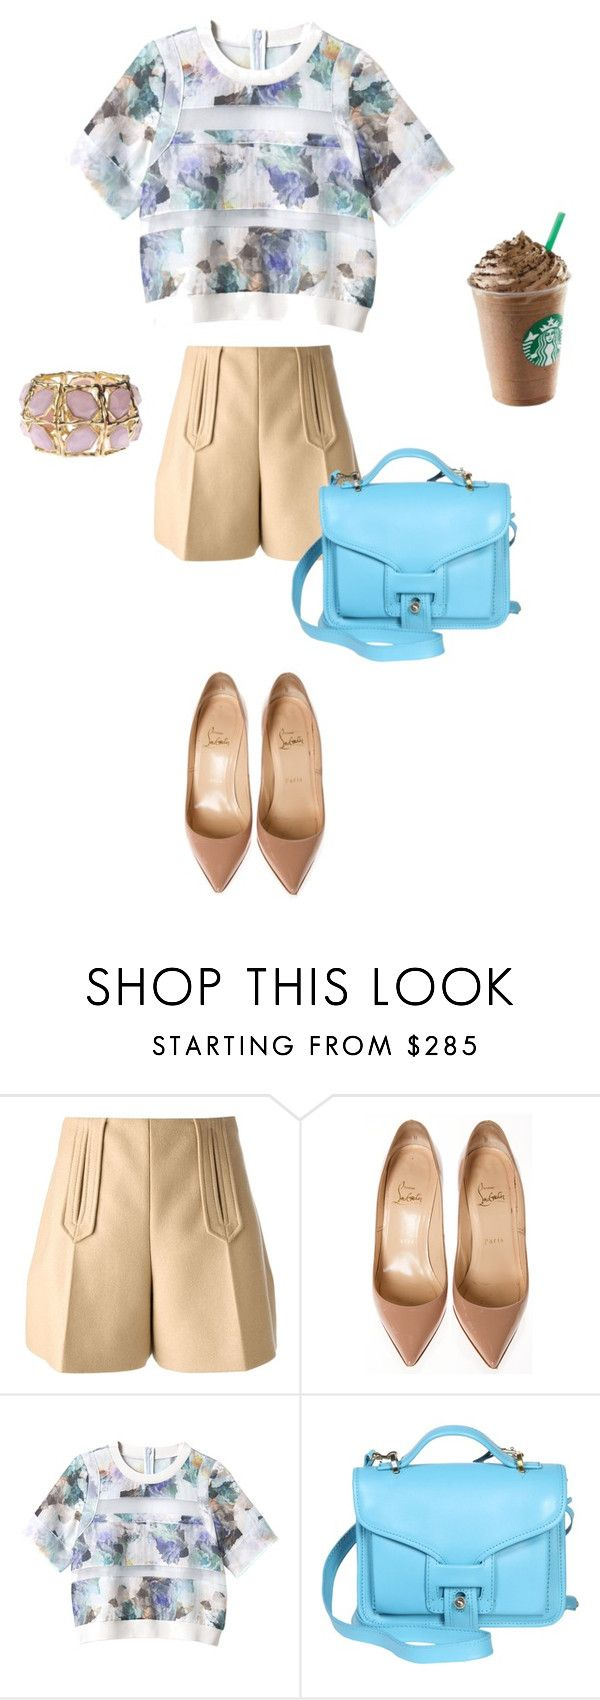 """Morning"" by explorer-14068977917 ❤ liked on Polyvore featuring beauty, Carven, Christian Louboutin, Rebecca Taylor and Opening Ceremony"